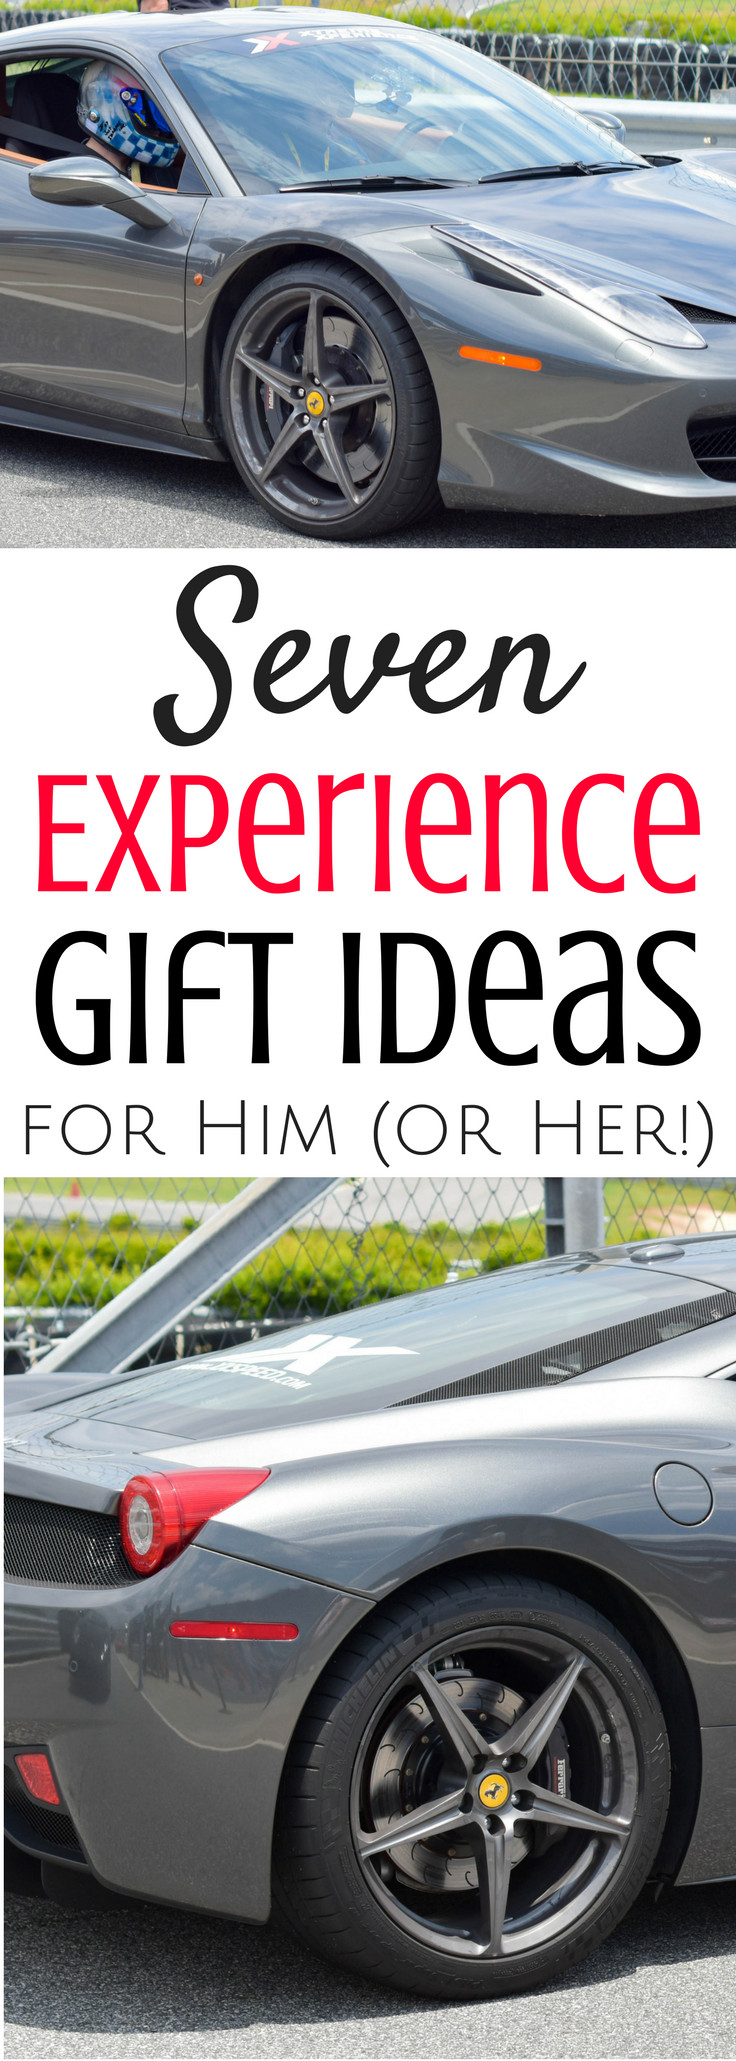 Best ideas about Experience Gift Ideas For Him . Save or Pin Seven Experience Gift Ideas for Him or Her Now.